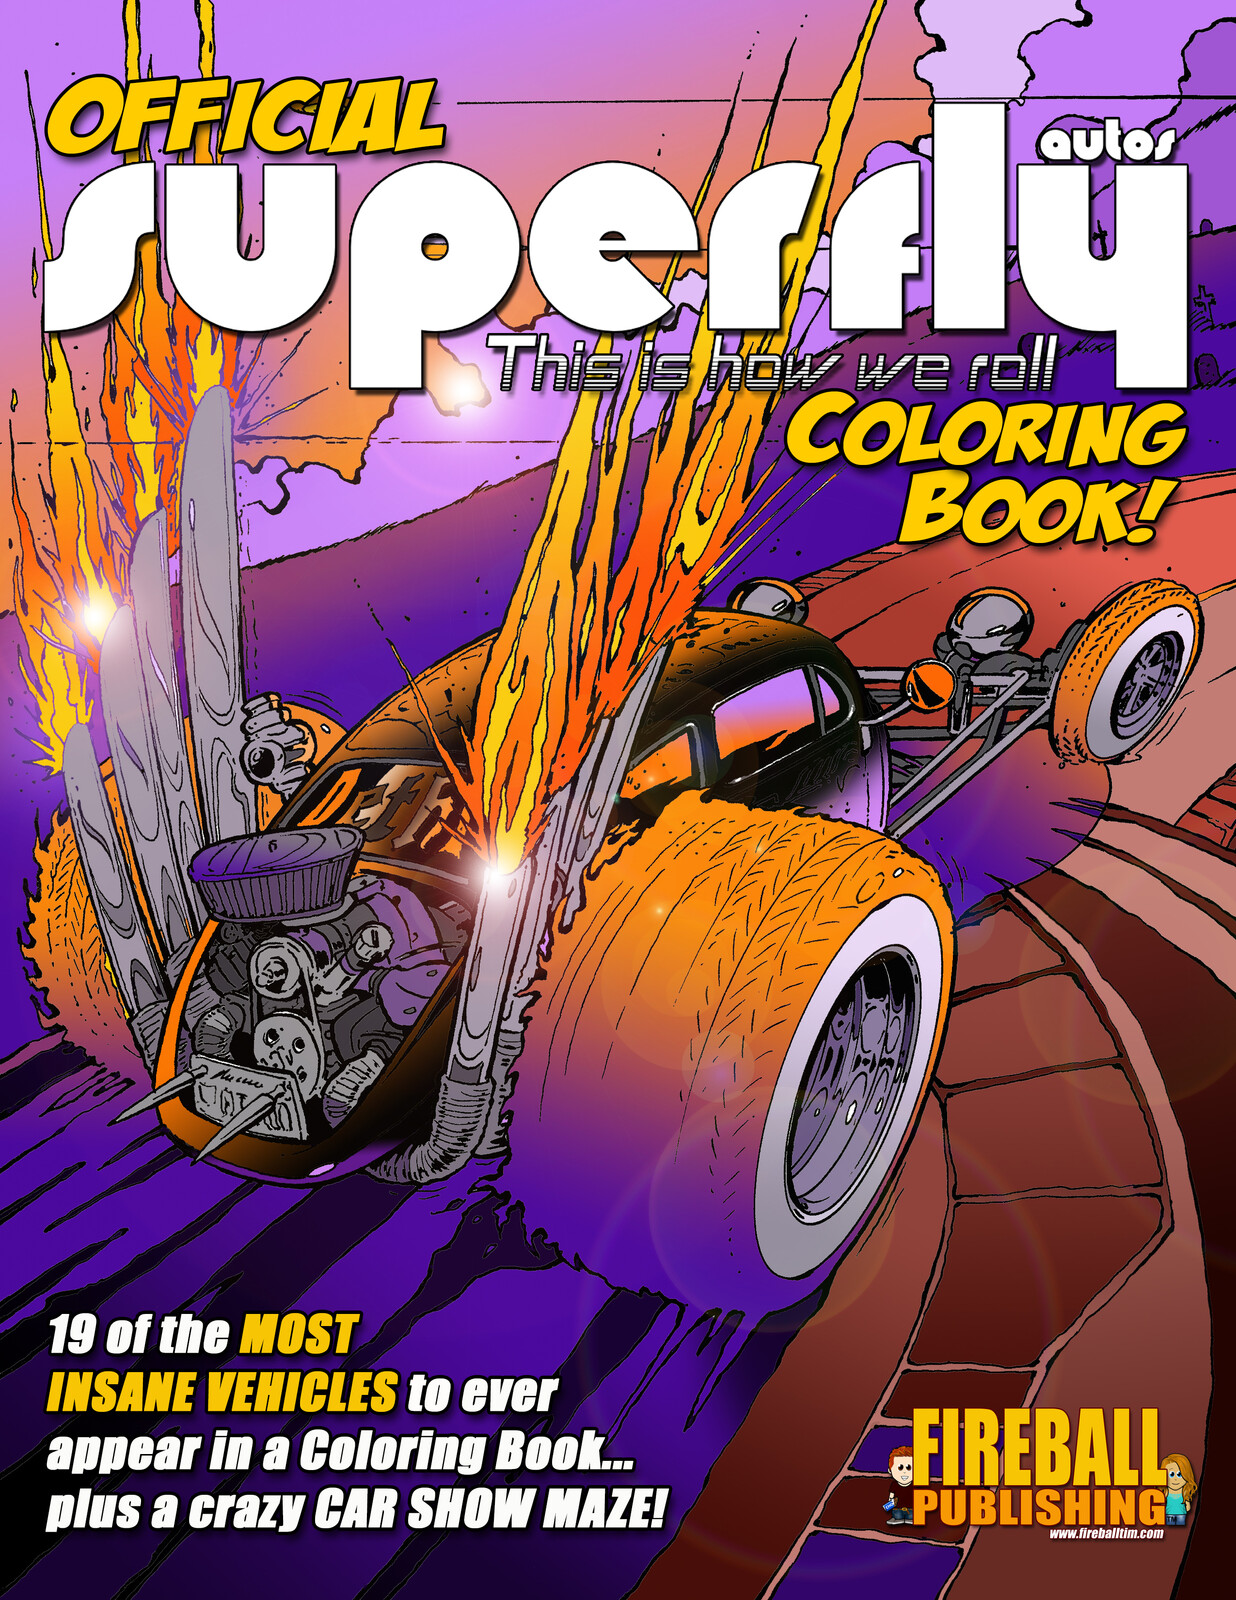 The Official SUPERFLY AUTOS Coloring Book